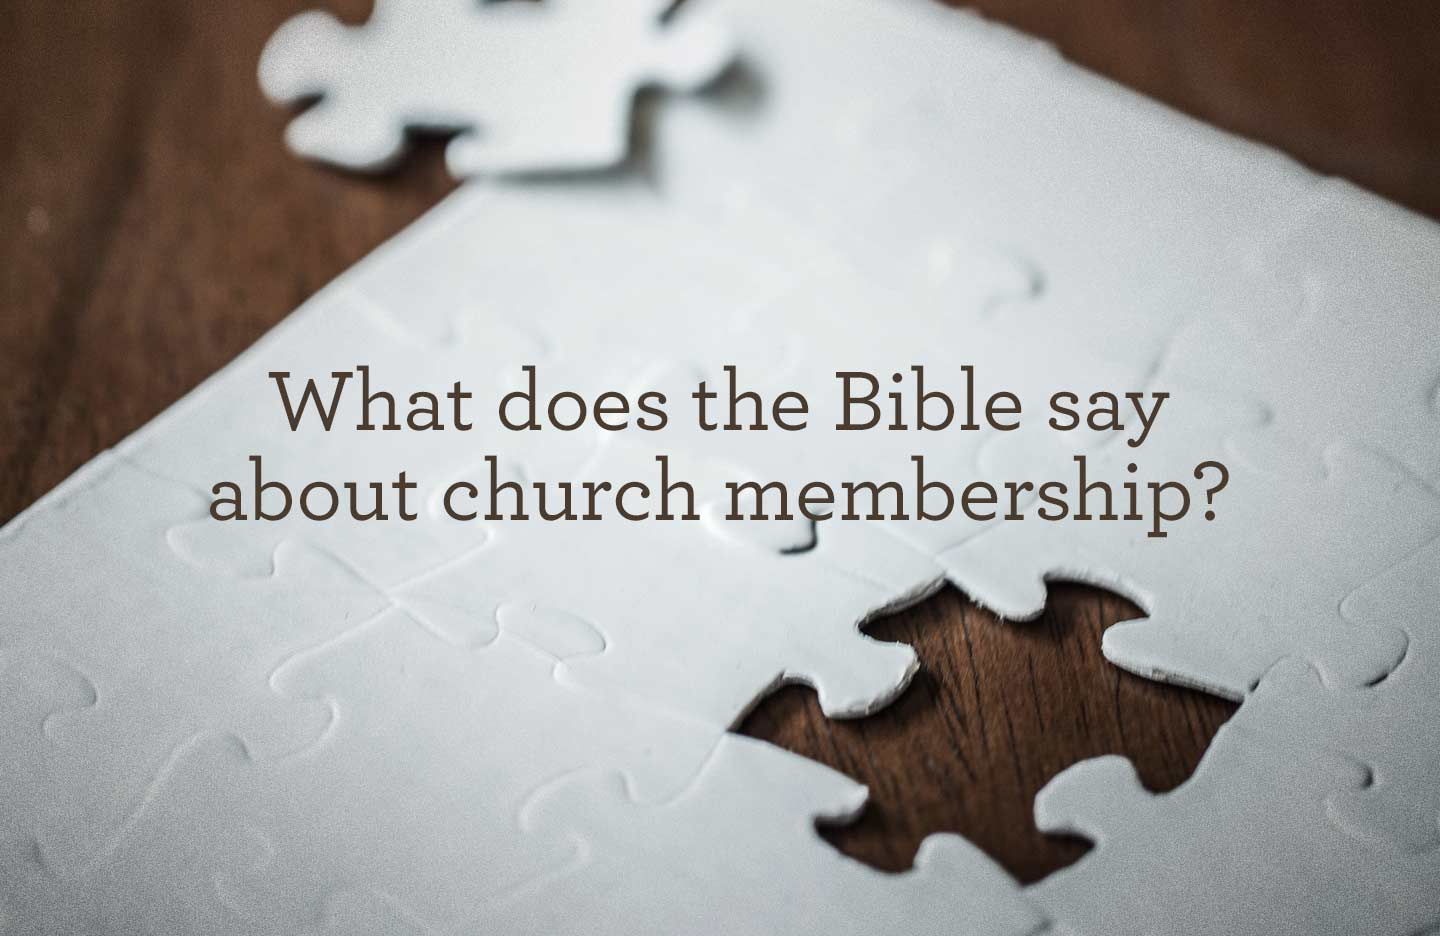 thumbnail image for What does the Bible say about church membership?